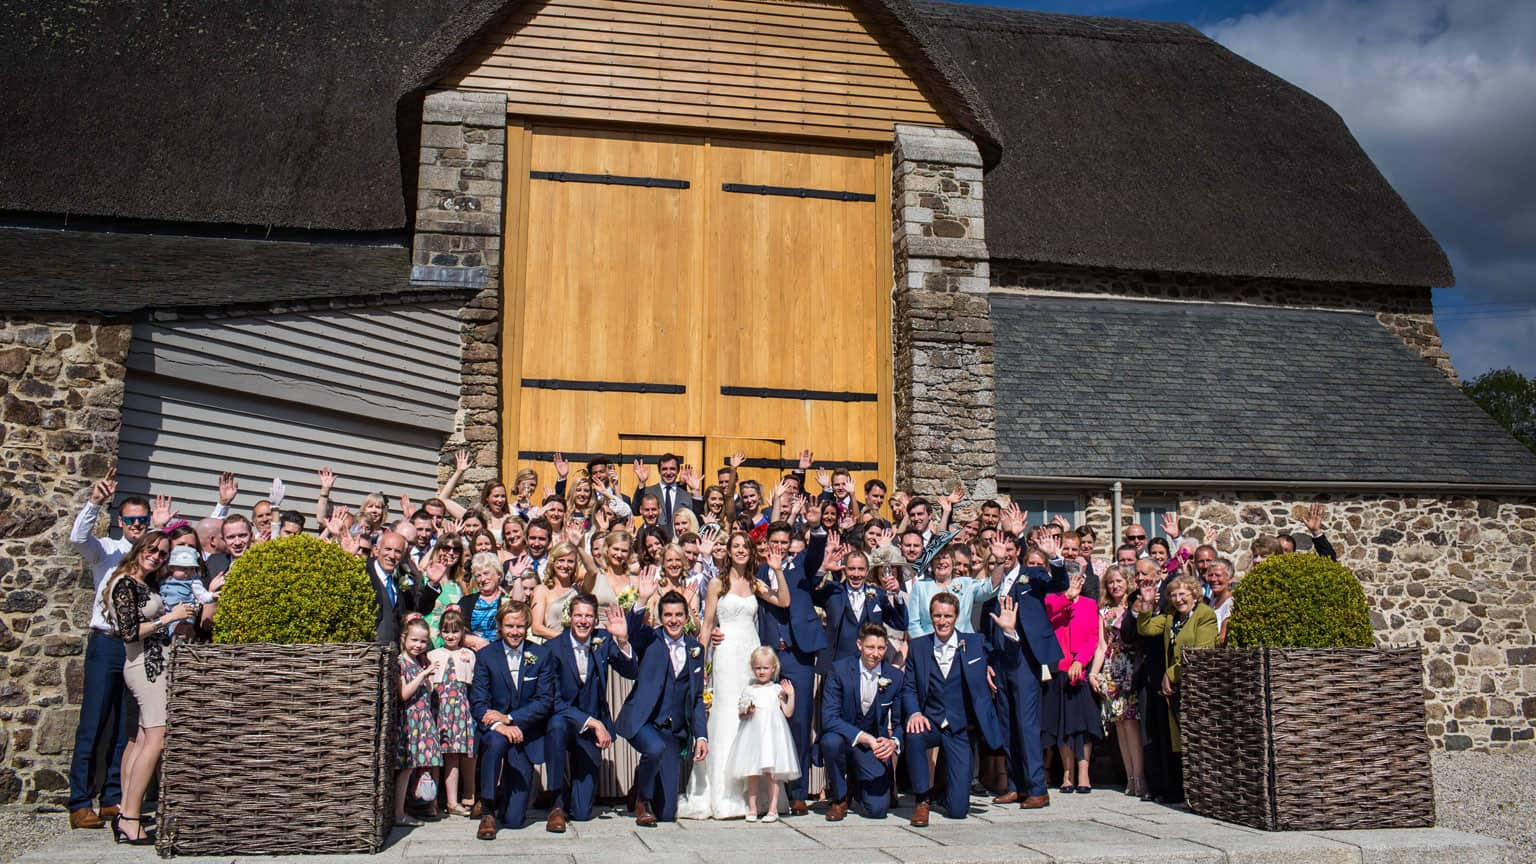 wedding photography, beautiful wedding venue, devon wedding venues, the great barn devon